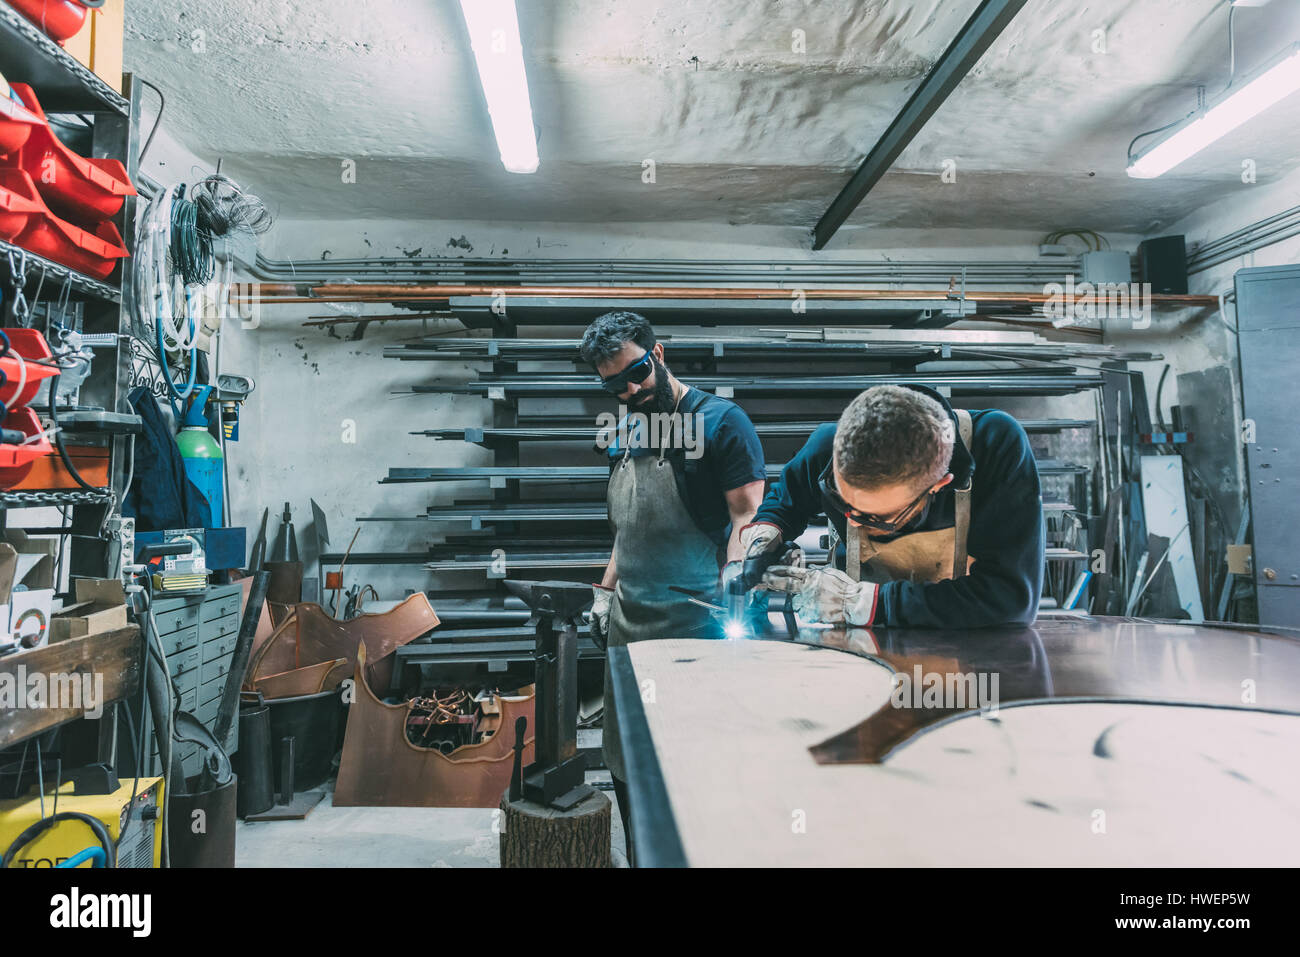 Metalworker cutting copper with welding torch in forge workshop - Stock Image